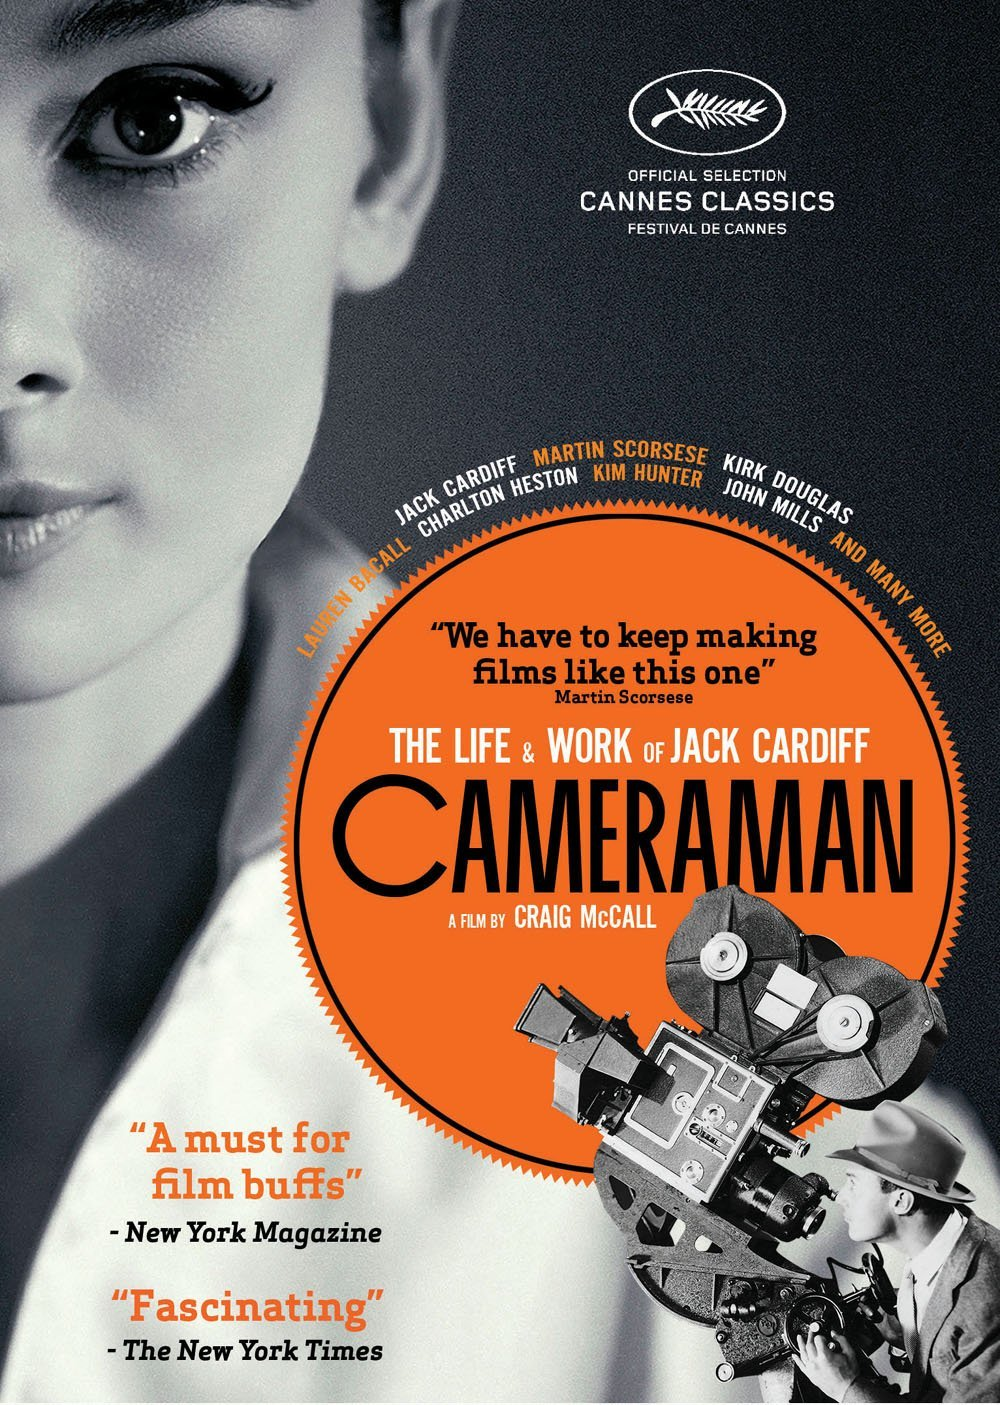 Tres-Bohemes-Review-of-Cameraman